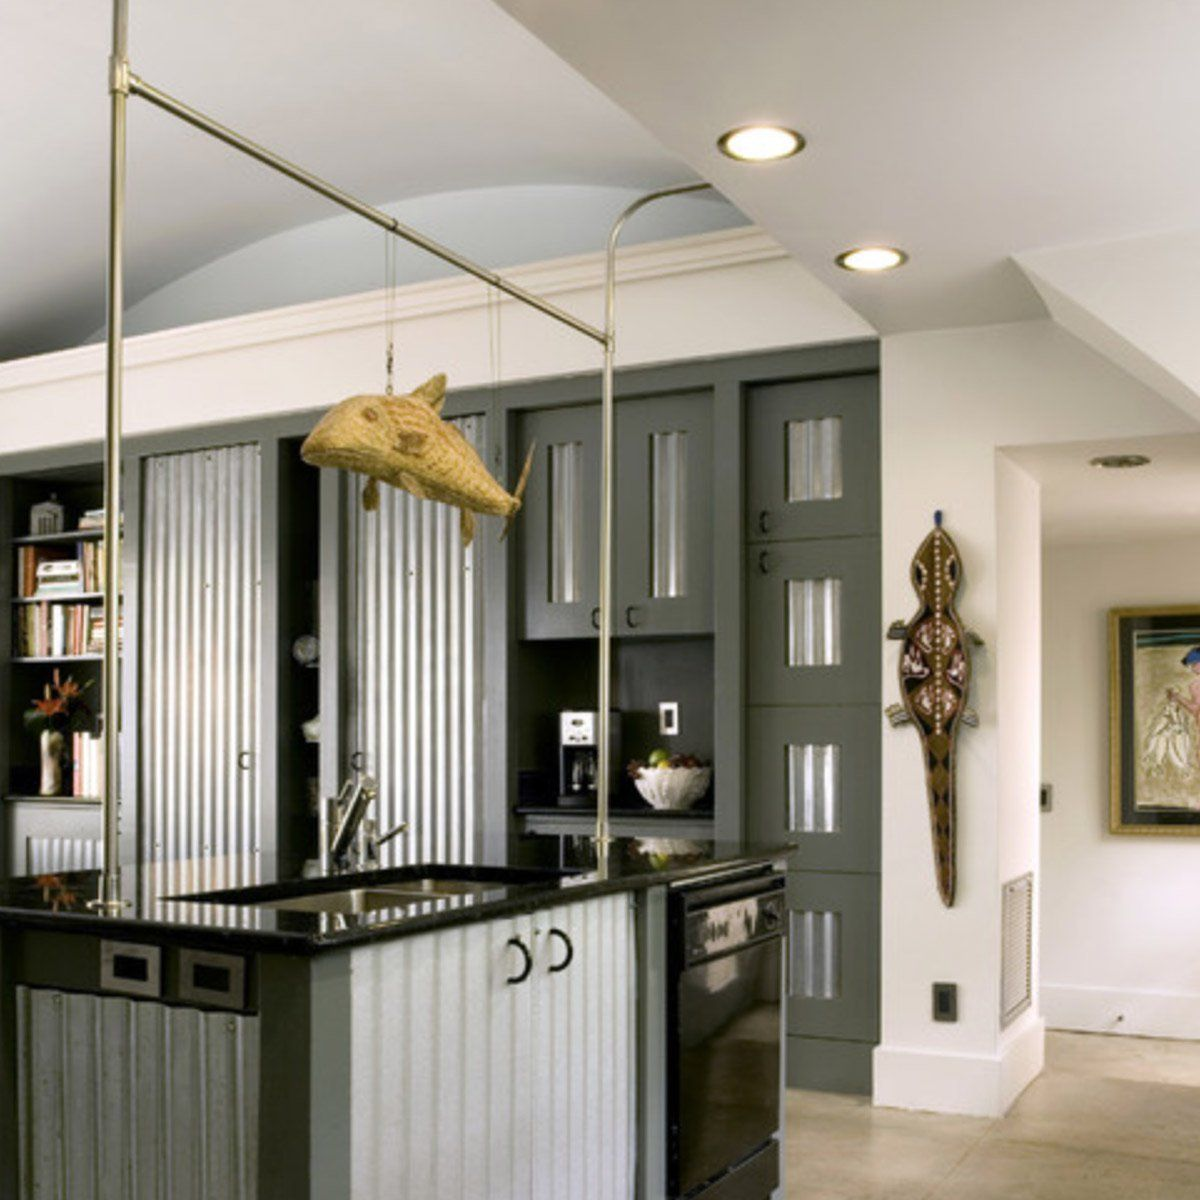 Stuck On What You Want Your Cabinet Doors To Look Like Just Get These Industrial Decor Kitchen Industrial Kitchen Design Kitchen Design Decor